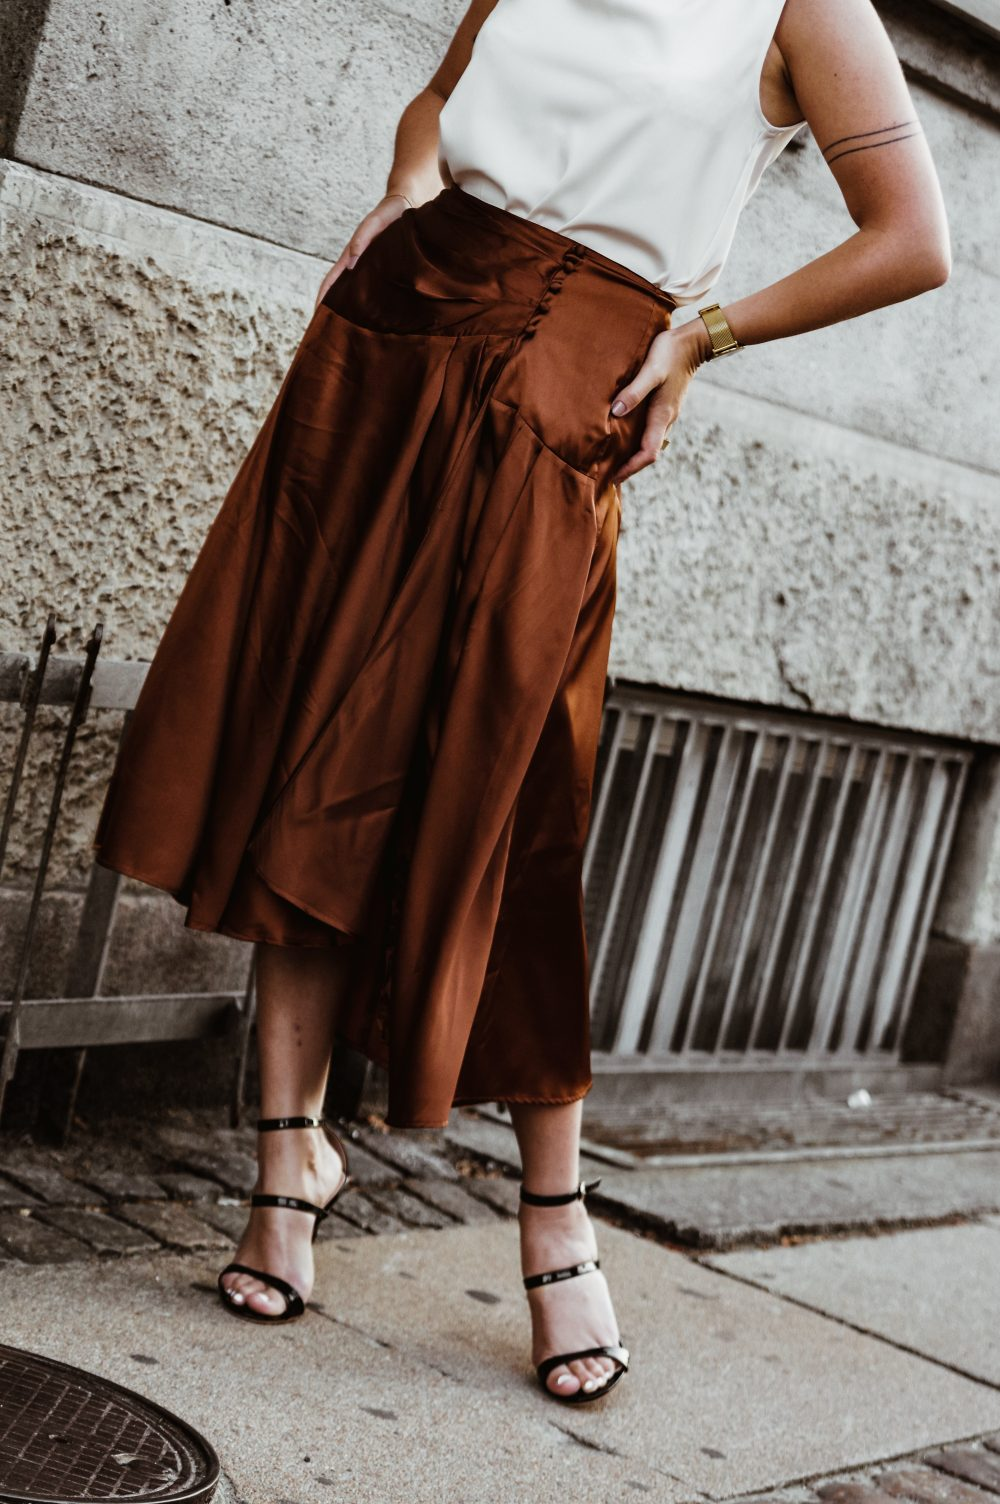 Brown Satin skirt, stylish work wear outfit for pre-fall and fall, fall fashion, streetstyle.jpg